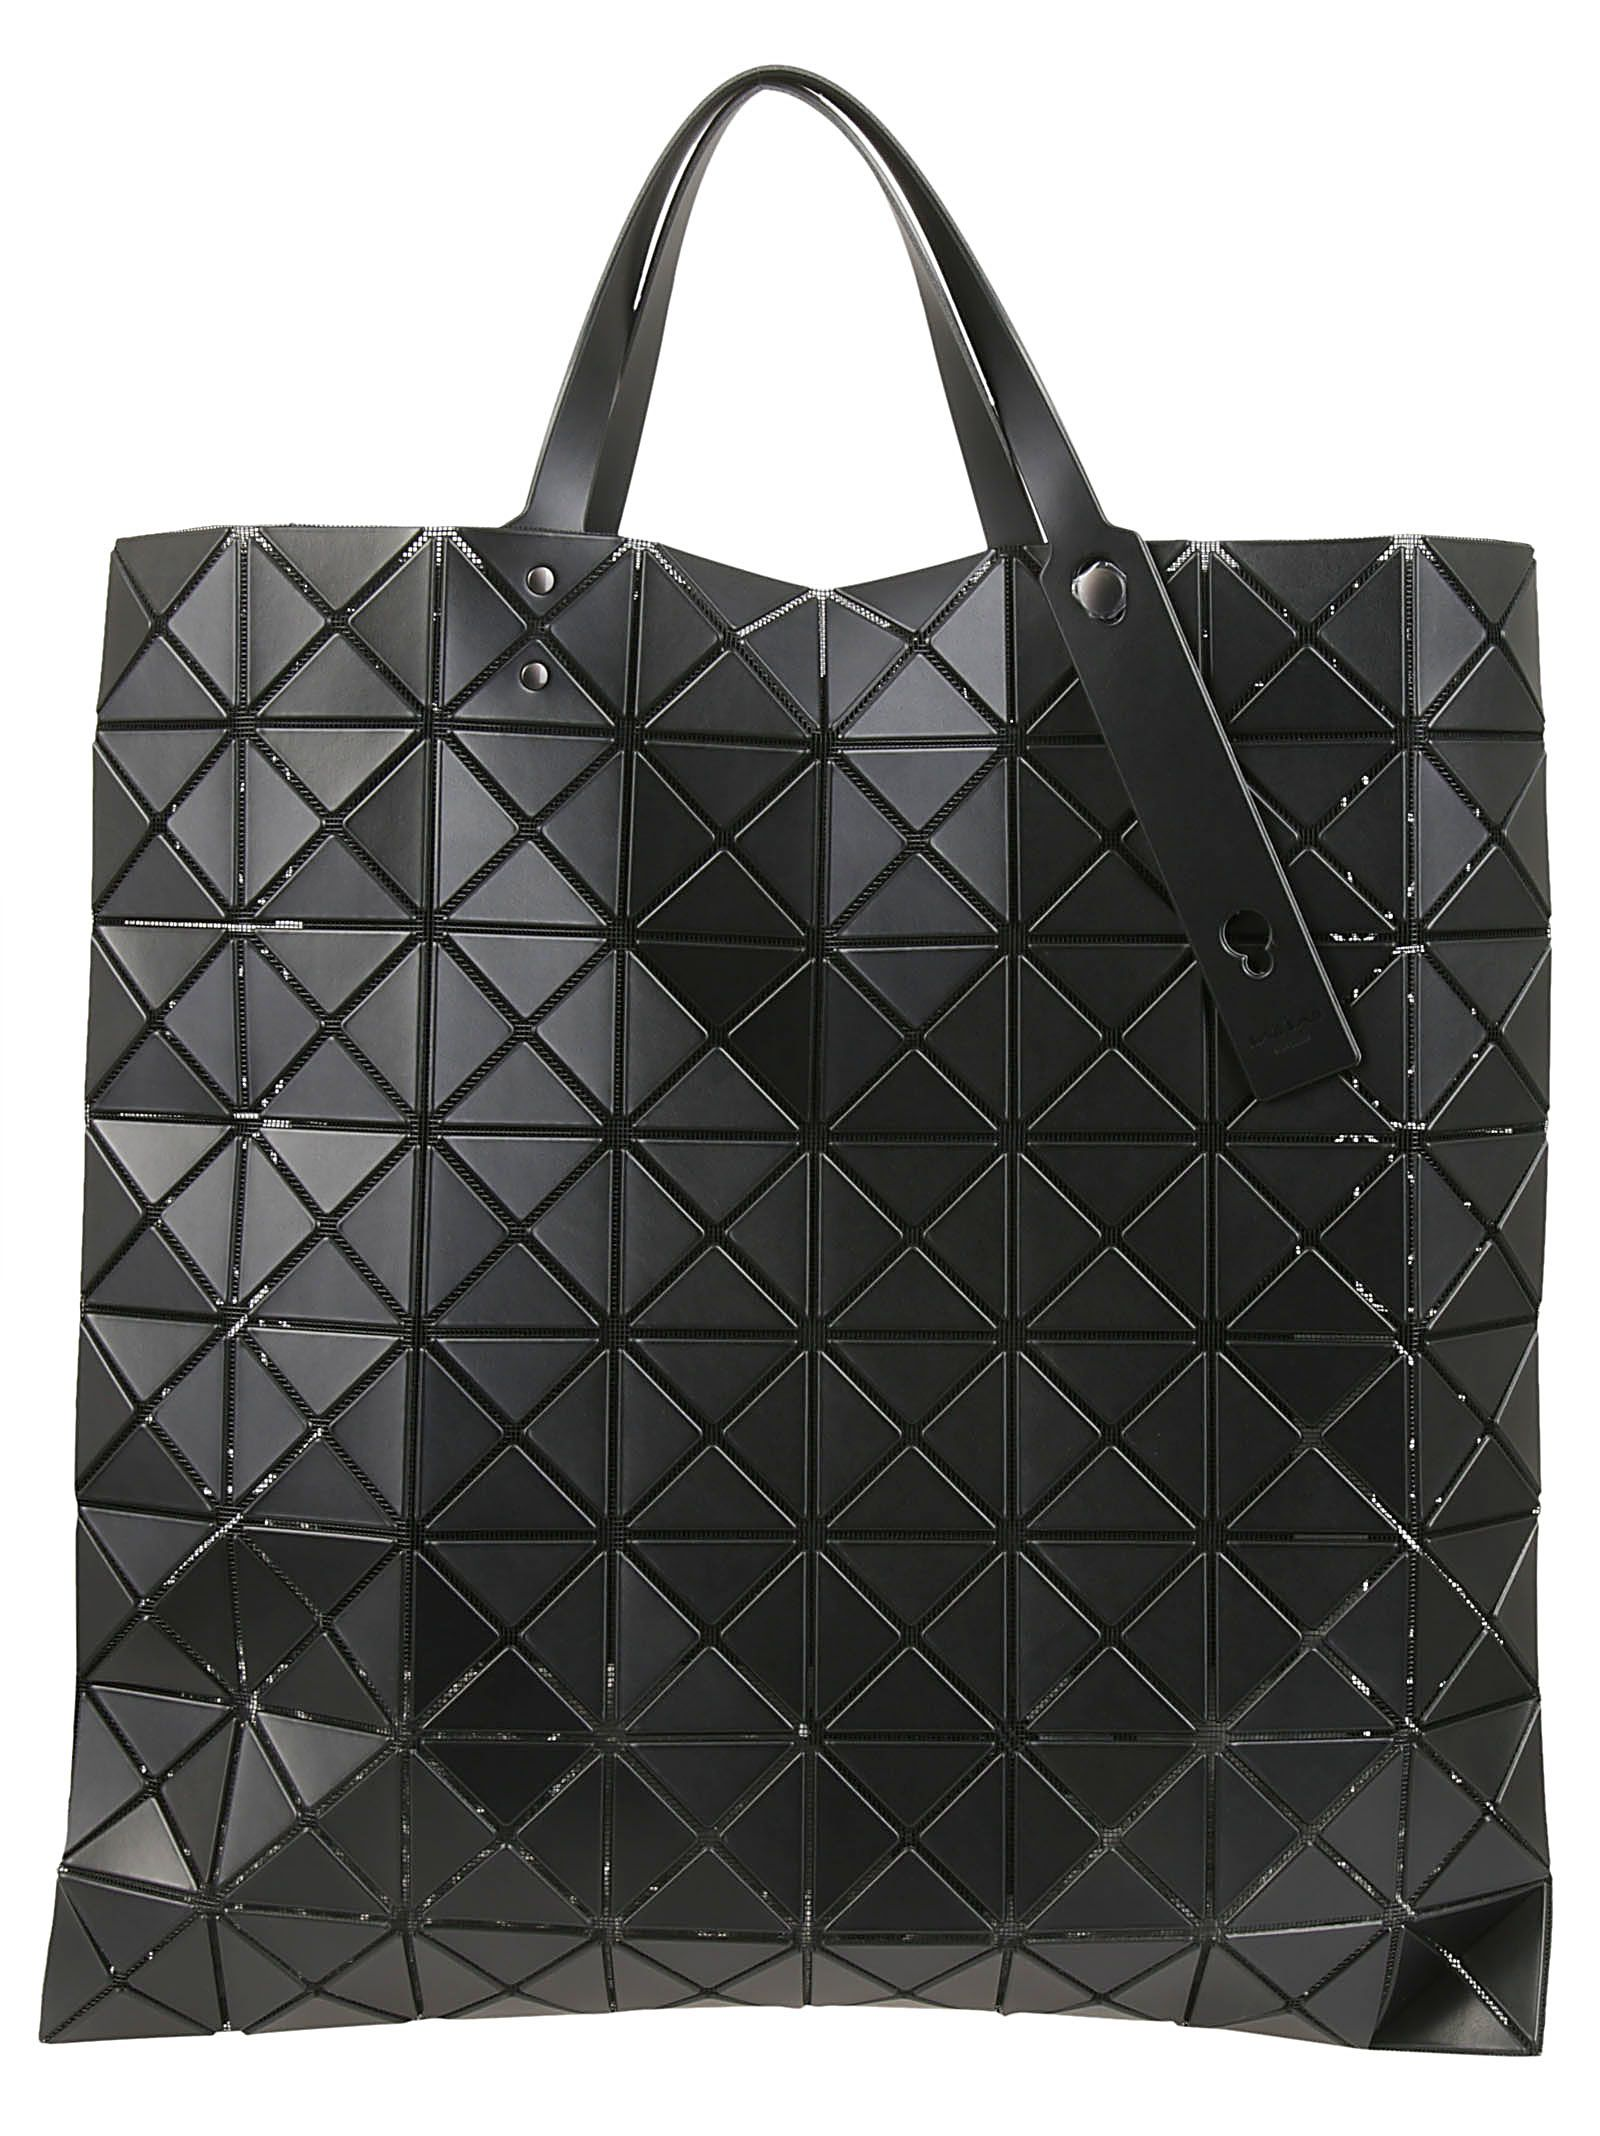 8460c502cfab Bao Bao Issey Miyake Lucent Matte Tote In Black